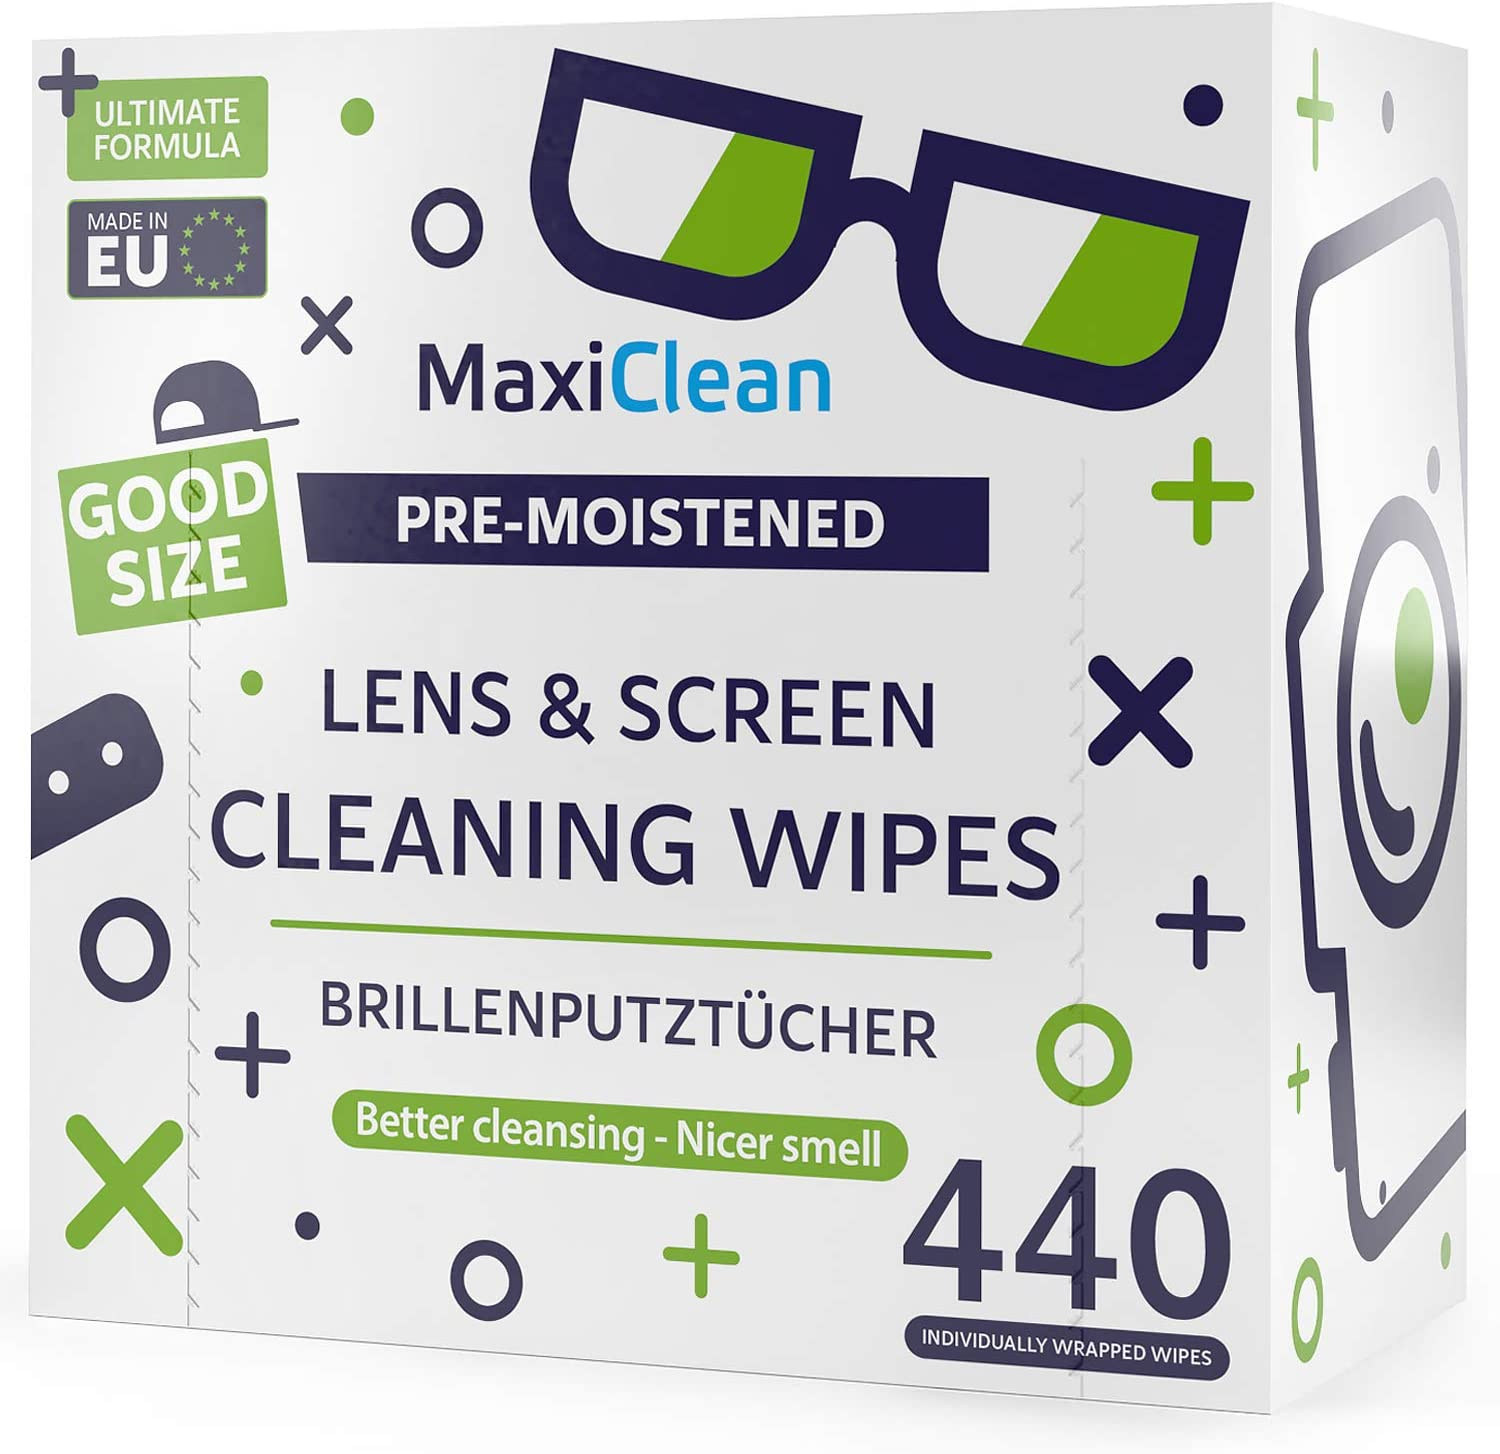 MAXI CLEAN Lens Wipes - 440 Pre-moistened Eyeglass Cleaning Wipes - Cleaner for Glasses, Laptops Screens, Binoculars, Optical Lens, Watch Screens, Made in Europe